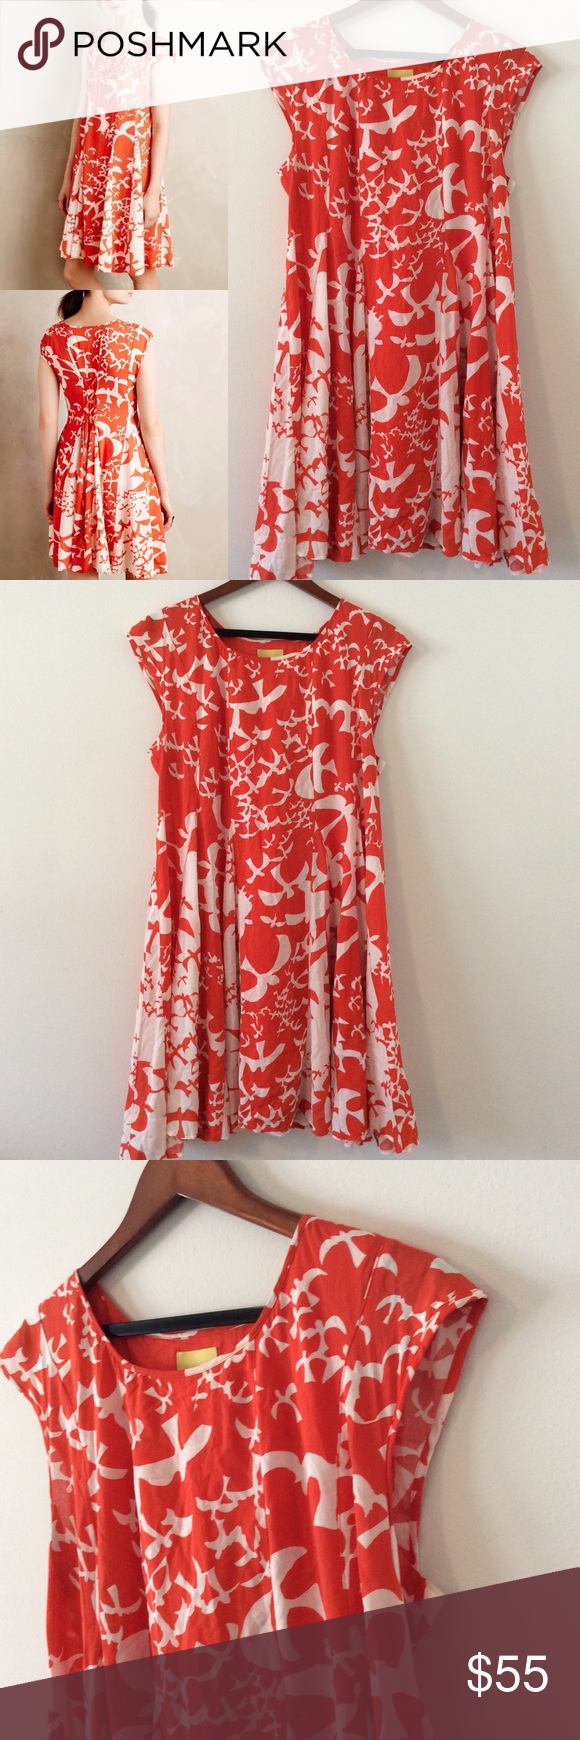 476583f2763b Anthro Maeve Bird Print Indiga Swing Dress 👗 L Beautiful spring colors.  Lace up tassel back. Size large. 100% rayon. Lined. Anthropologie Dresses